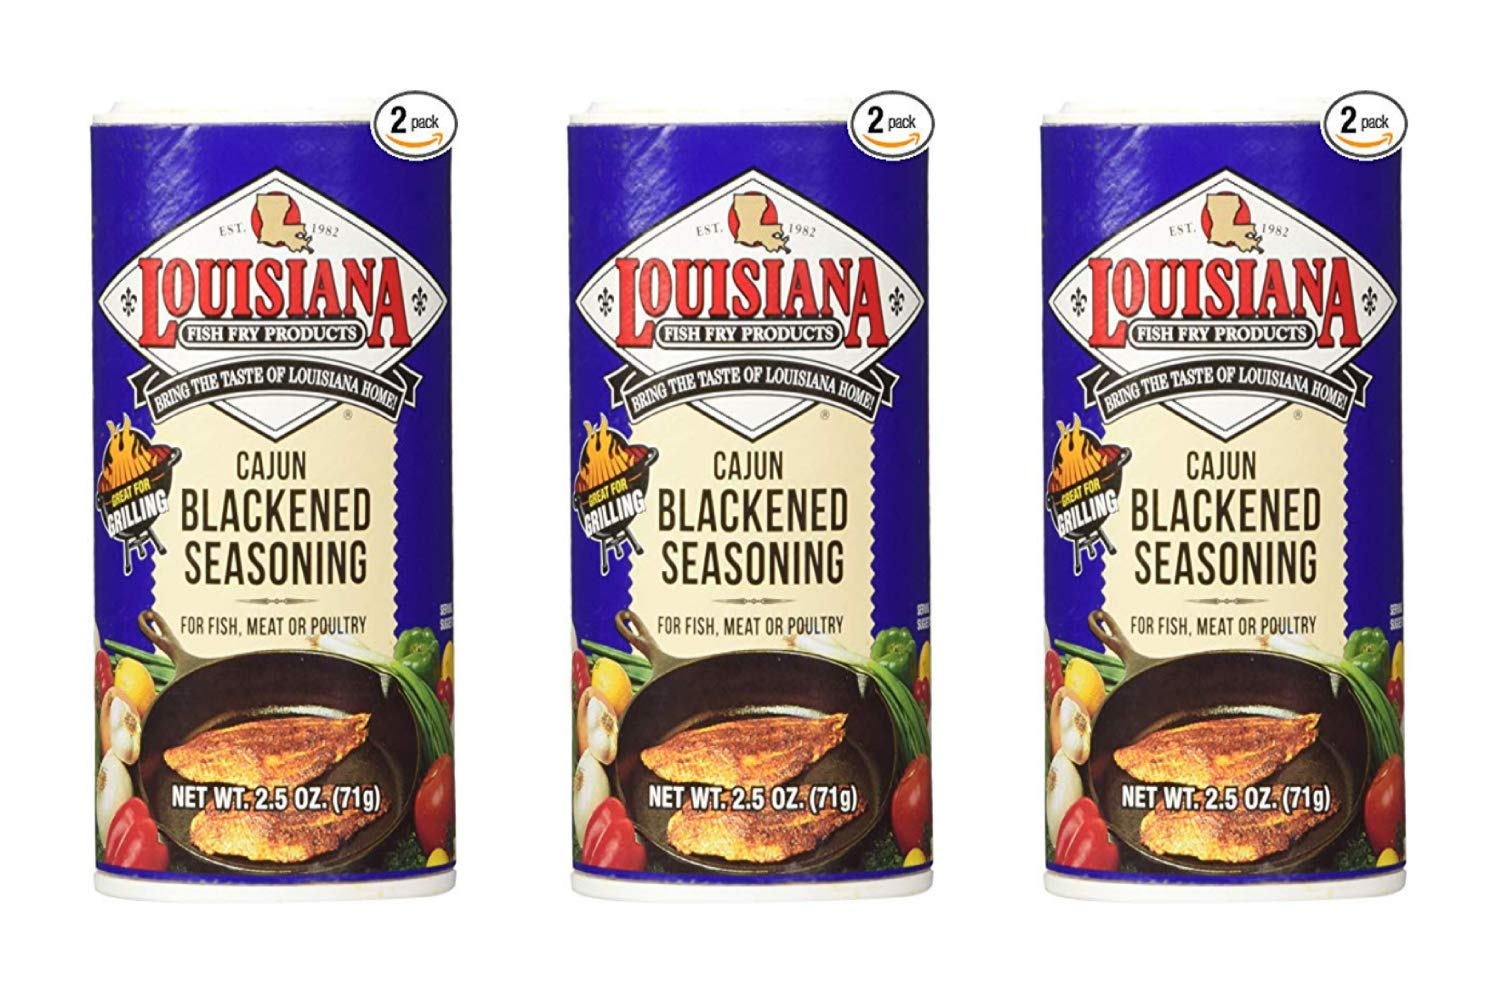 Louisiana Cajun Blackened Seasoning (71 Grams Shakers) 2 Count (3 Pack)